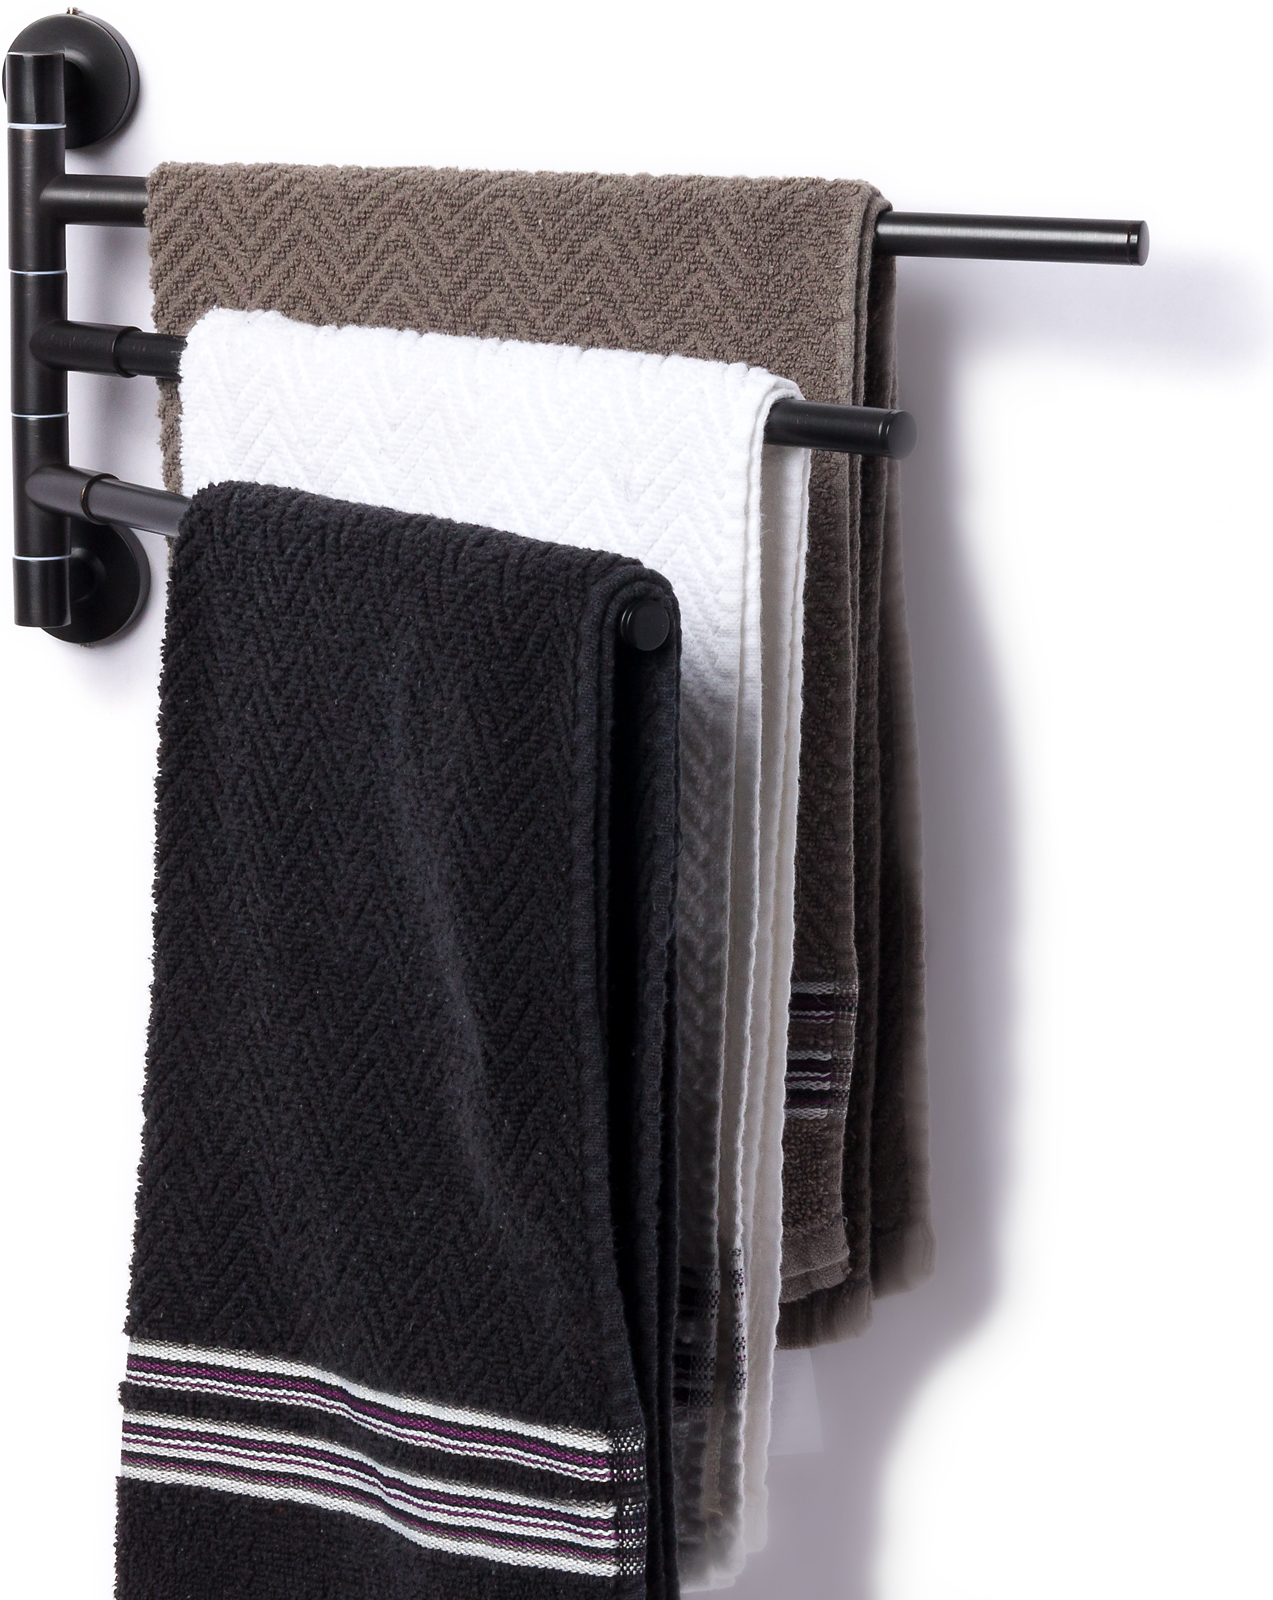 Mindful Design 3 Prong Swing Arm Bathroom Towel Bar Rack